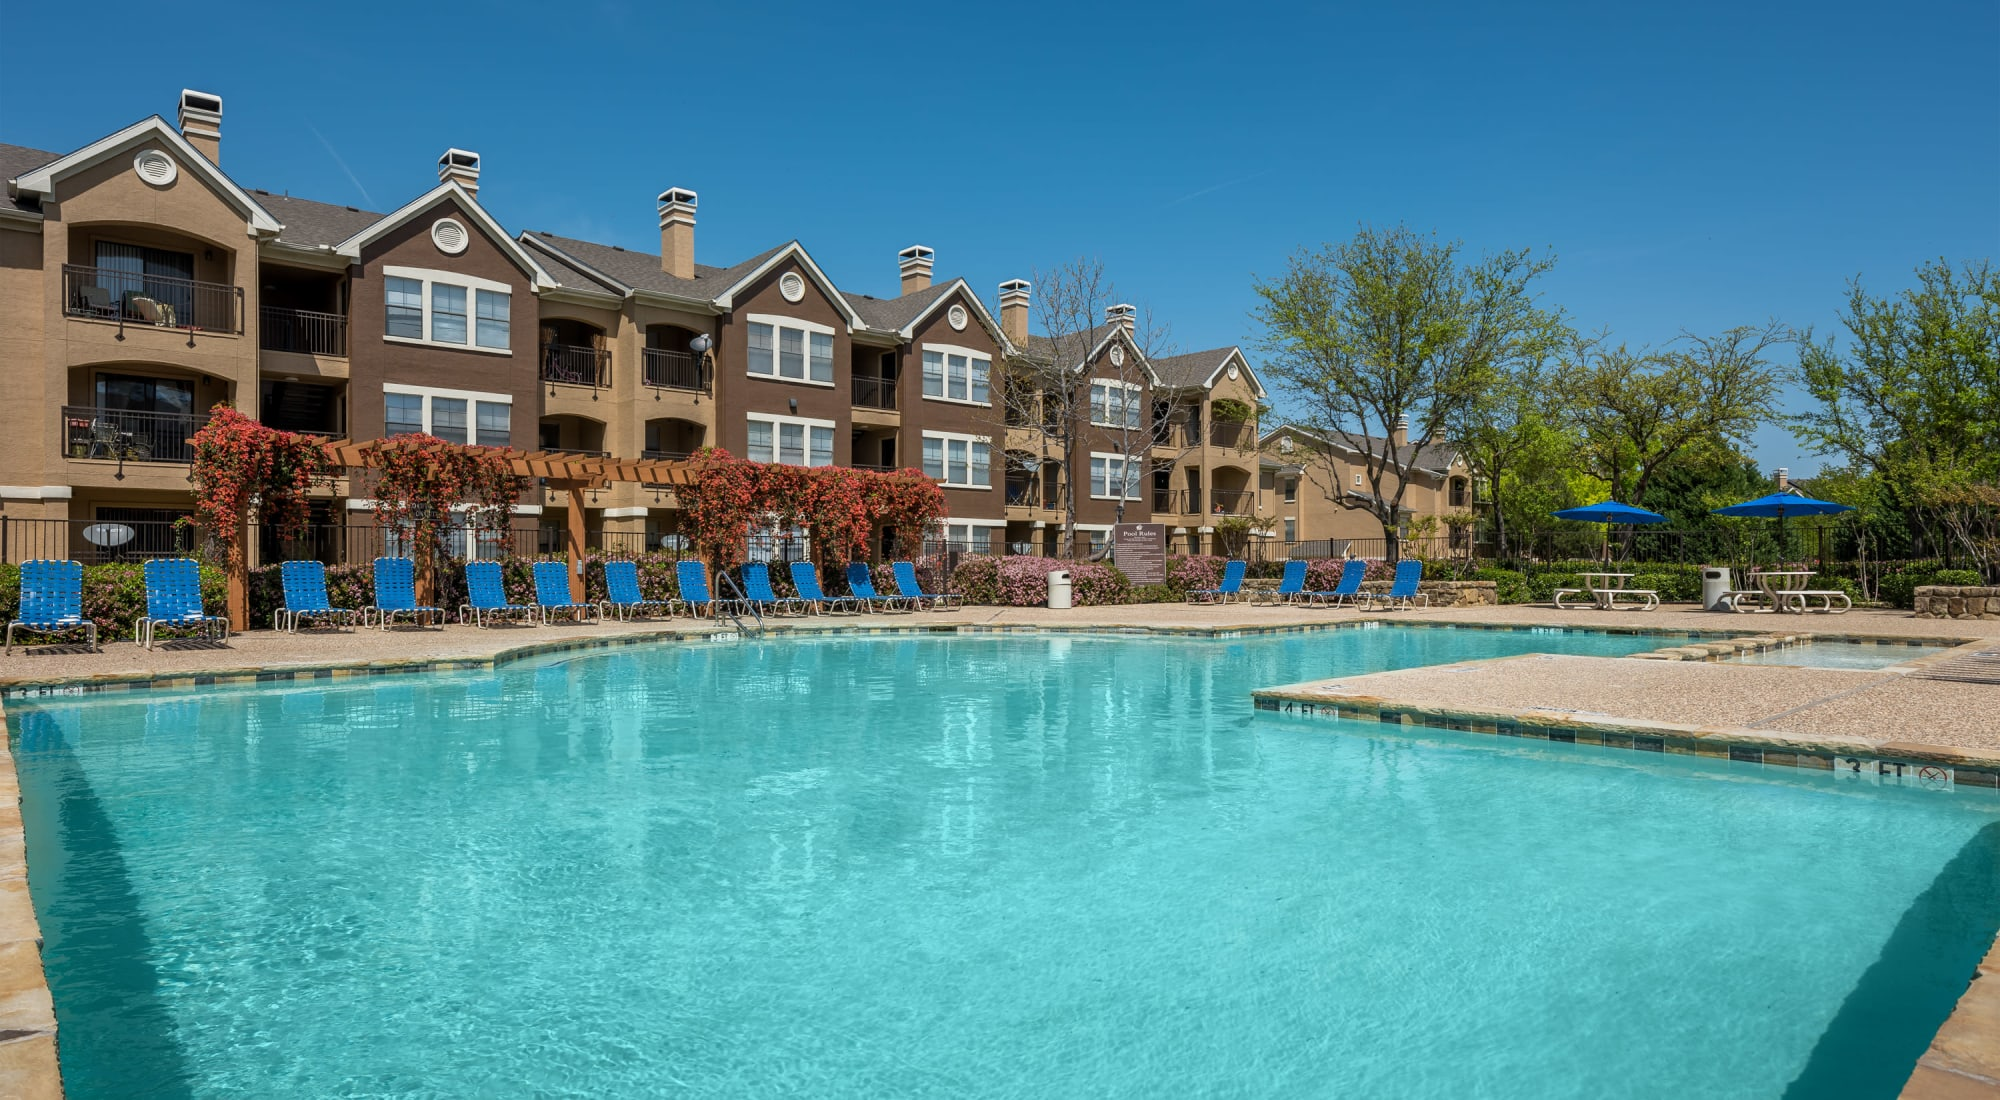 Apartments at Arbrook Park Apartment Homes in Arlington, Texas